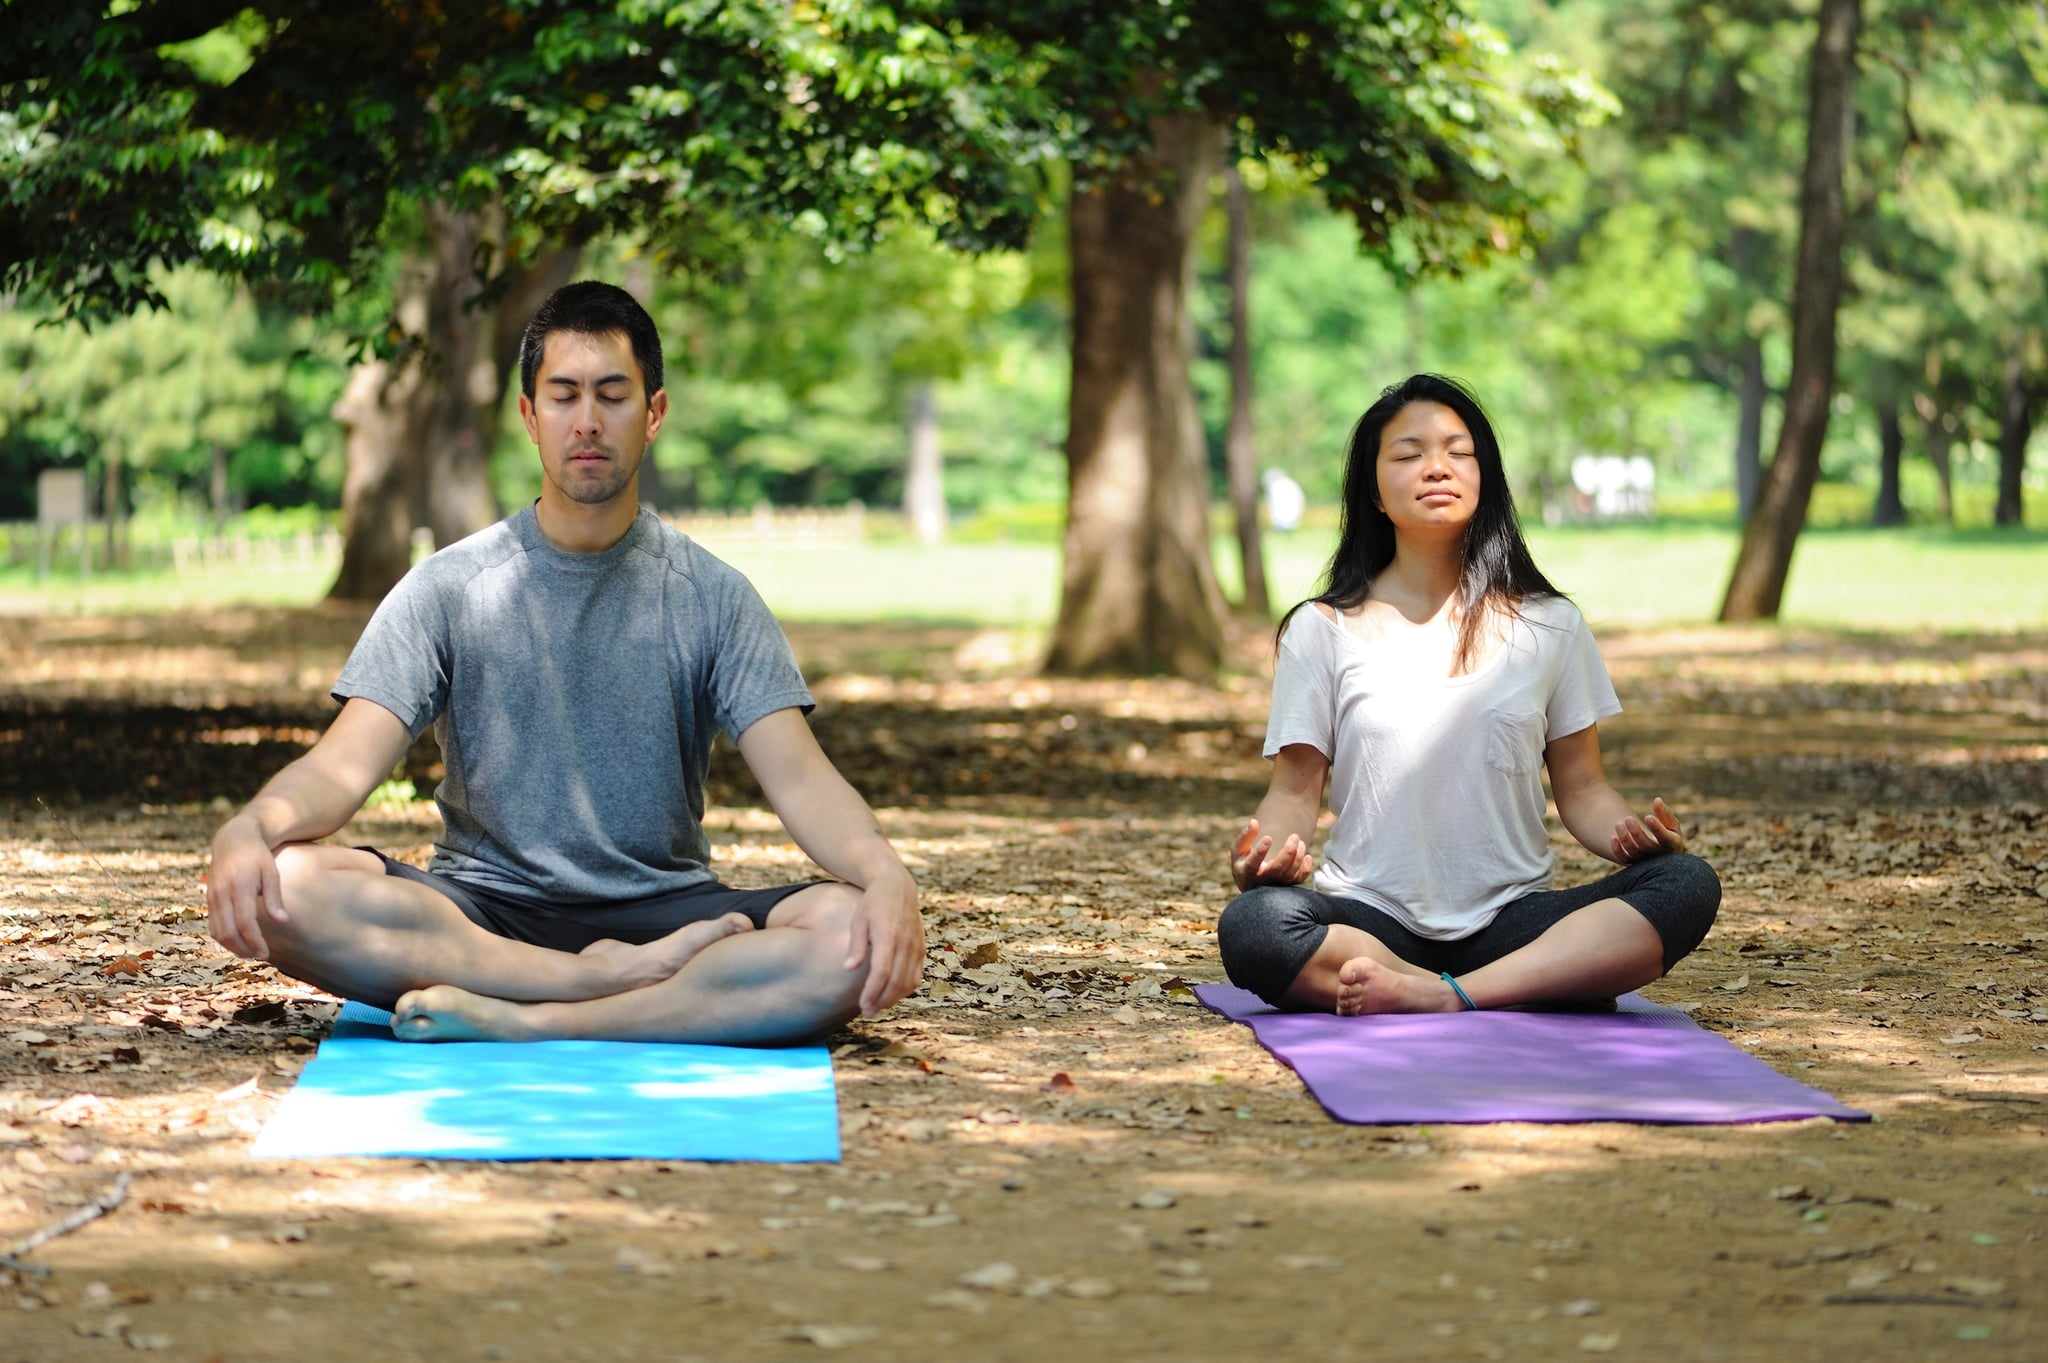 Two people meditating in the park on a sunny day.